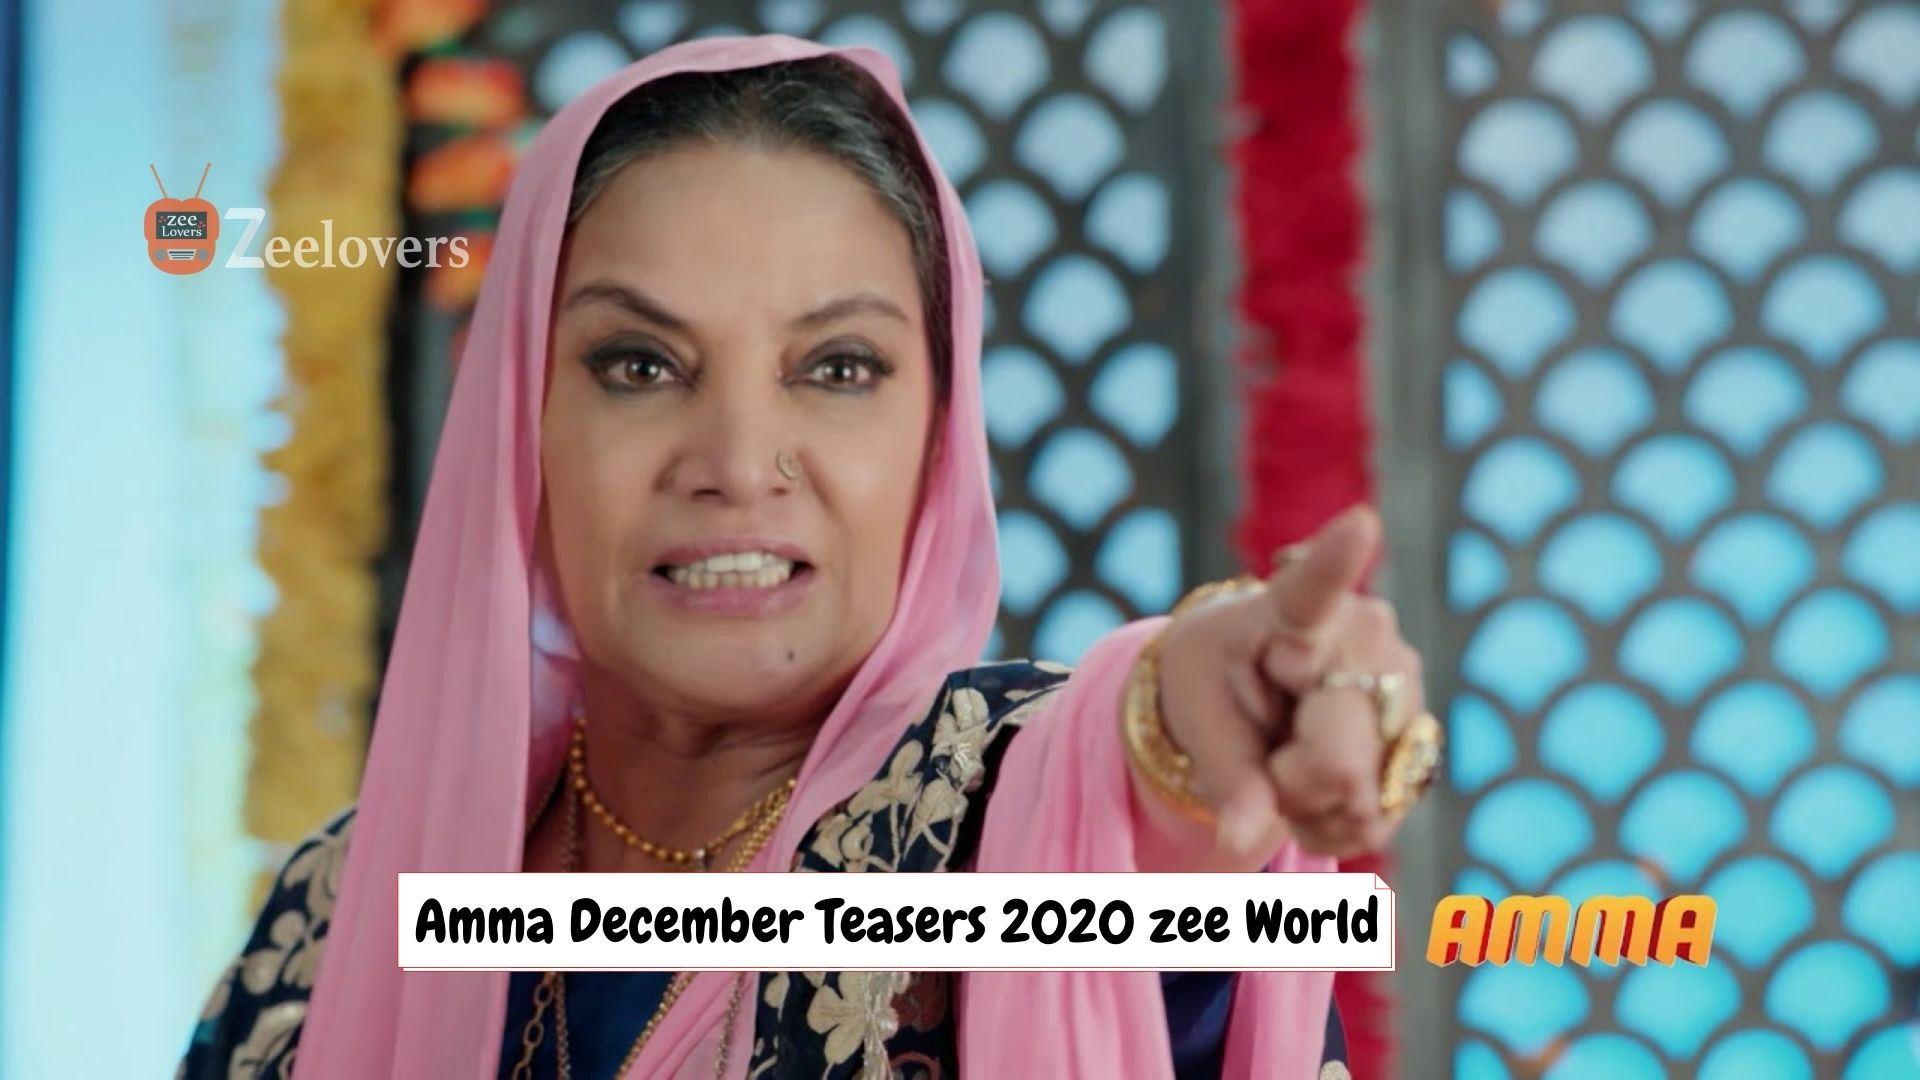 Amma December Teasers 2020 zee World